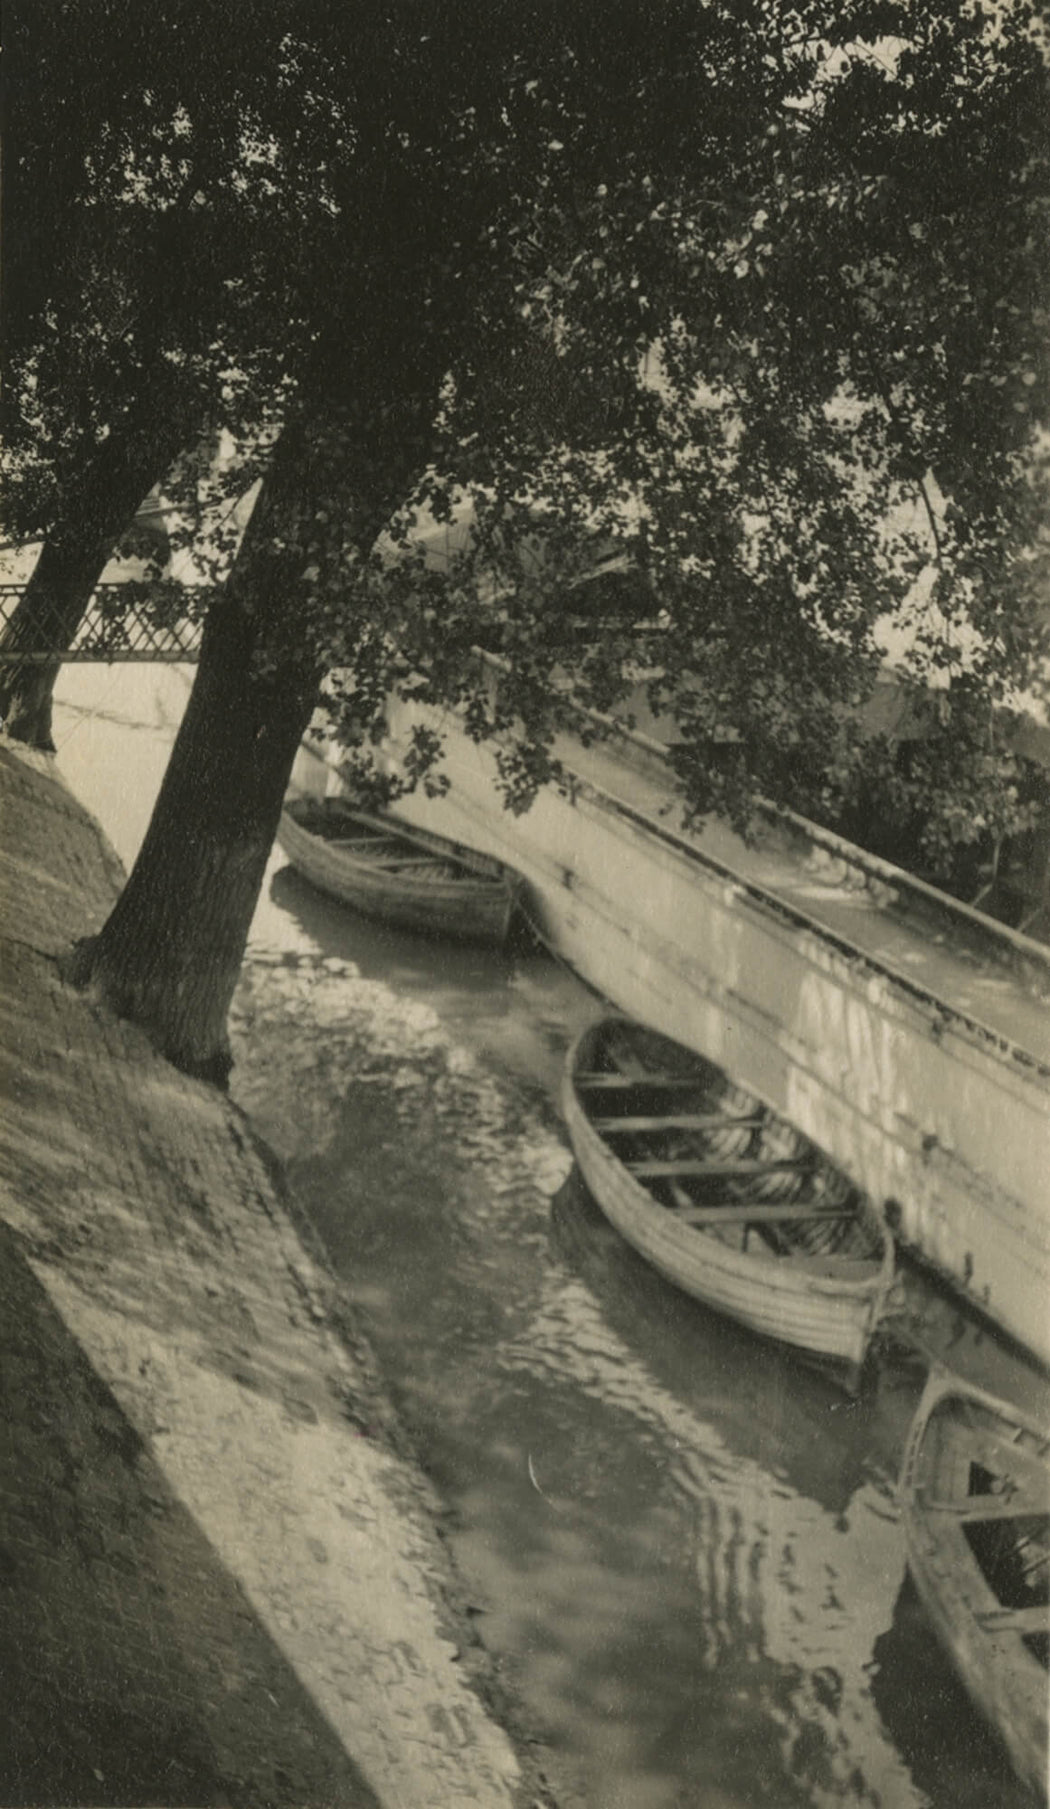 Untitled [Boats on the Seine], Paris